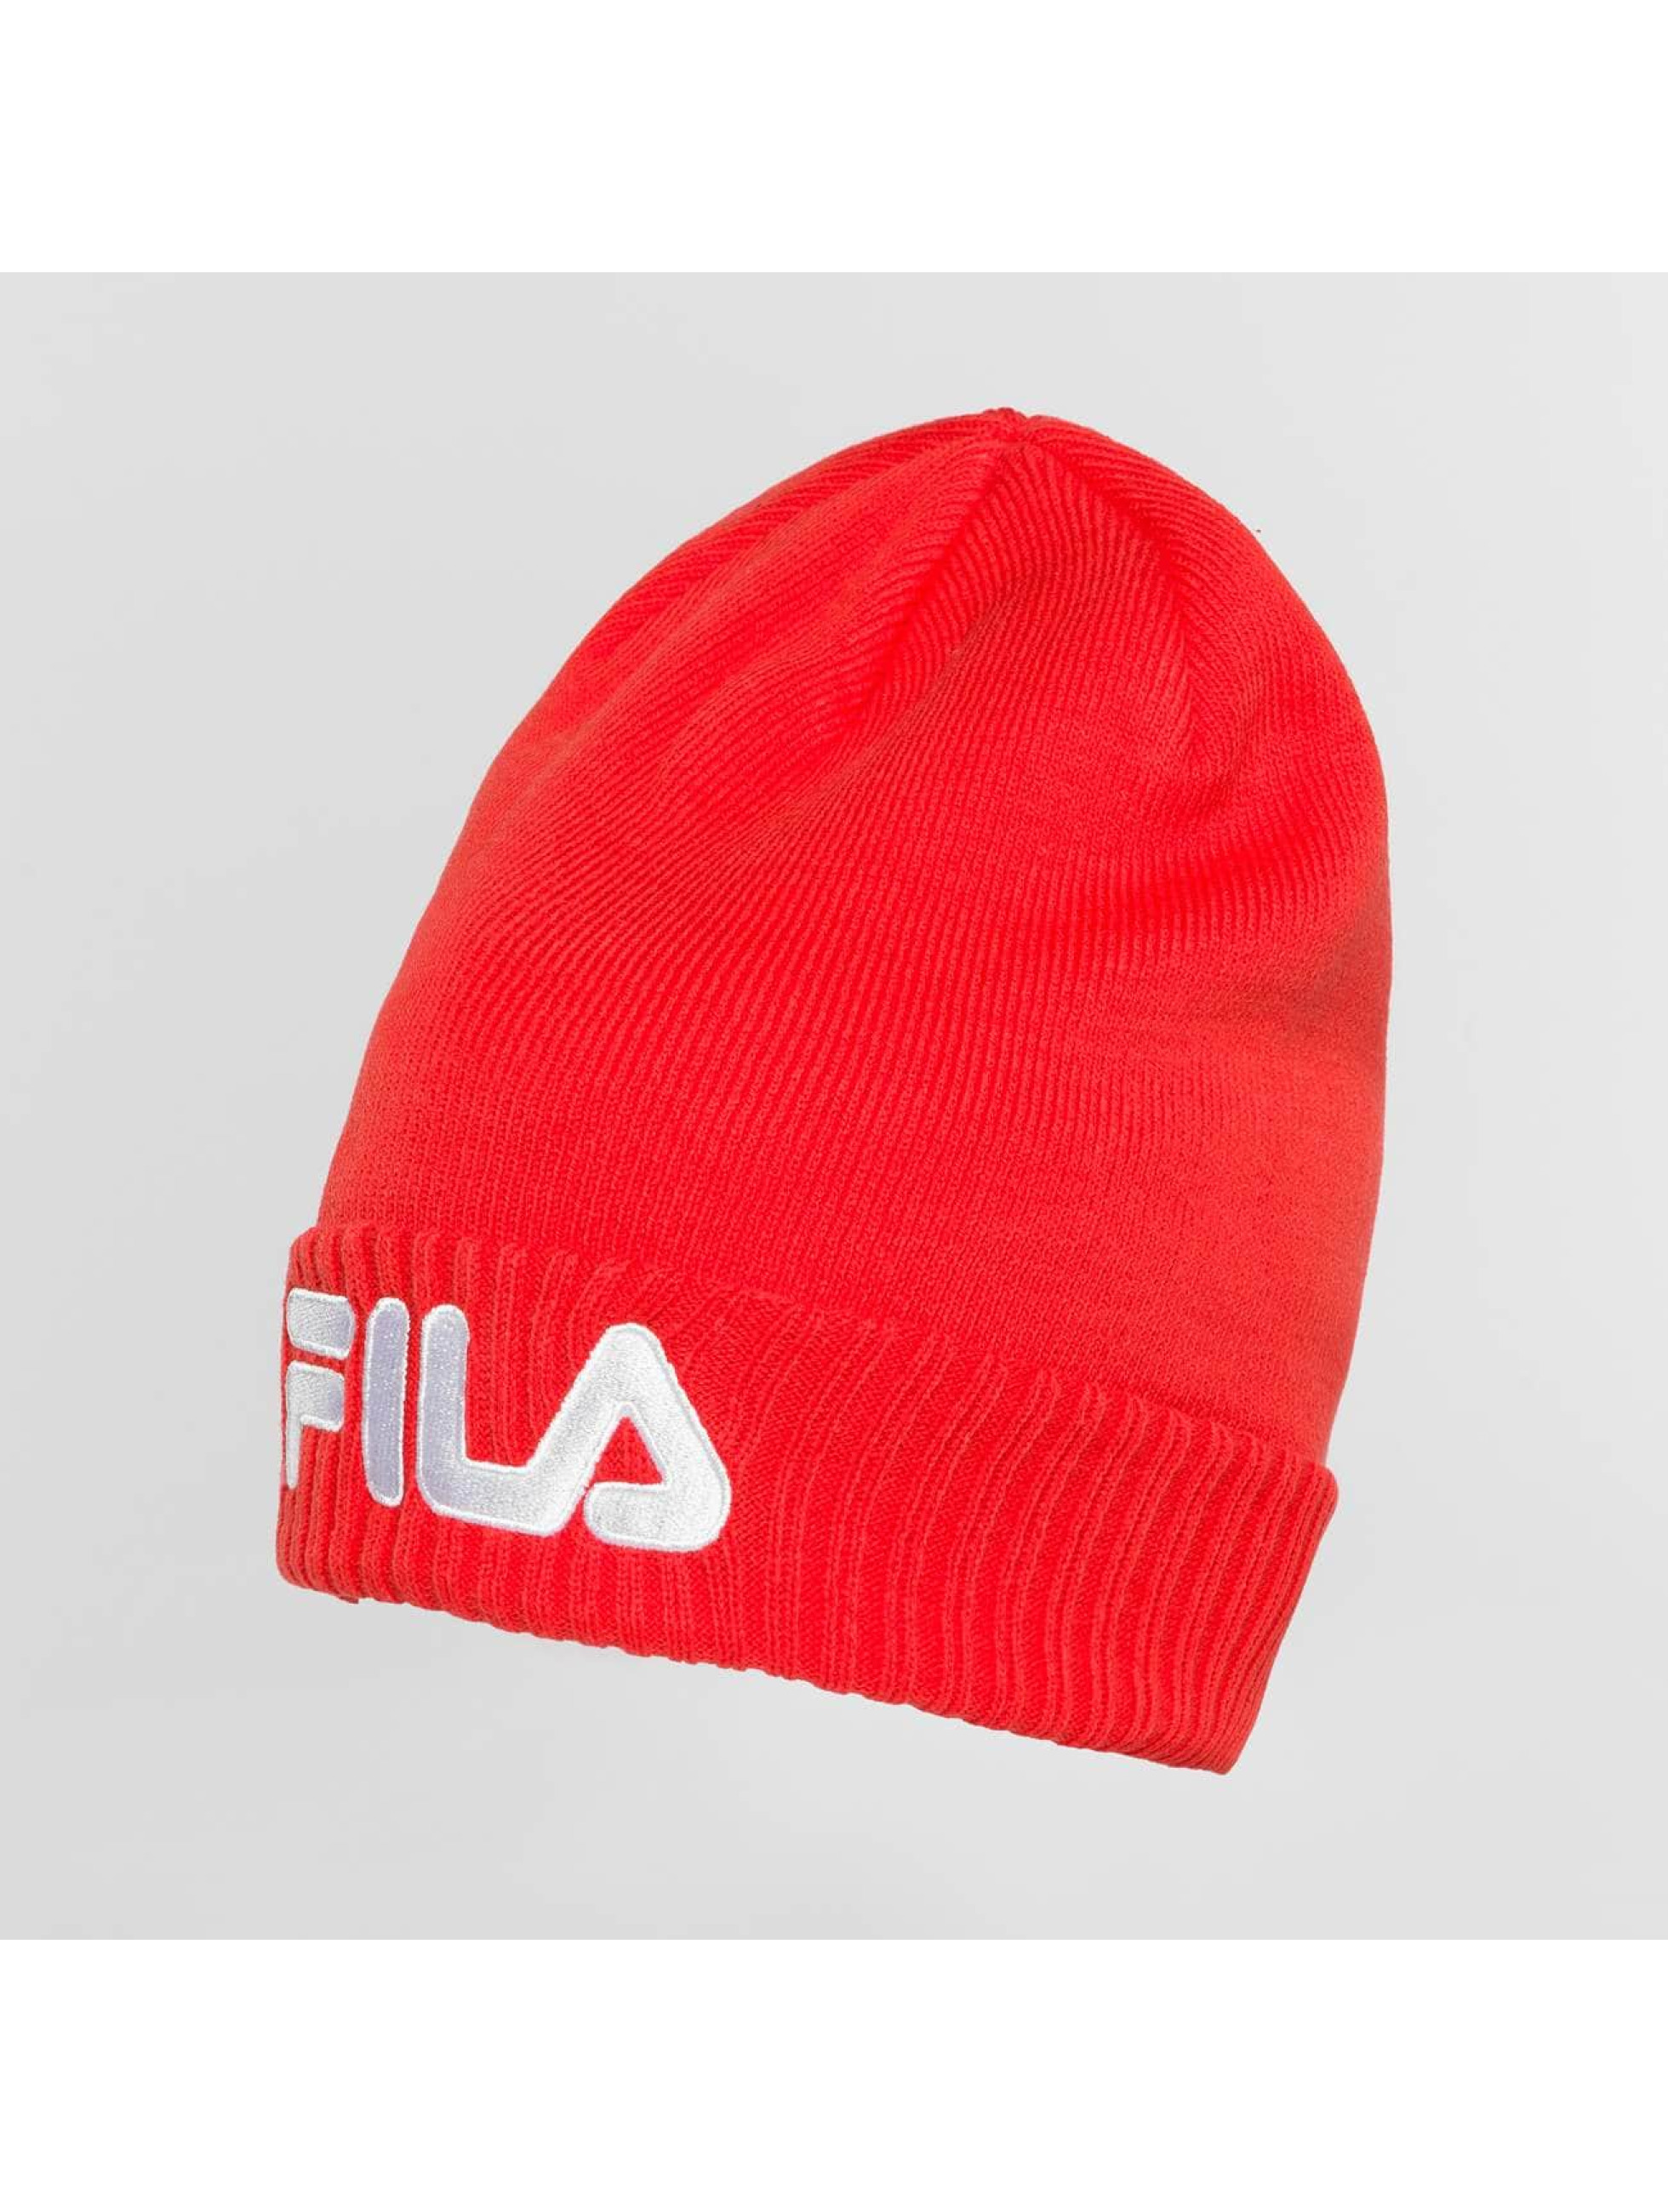 FILA Luer Urban Line red